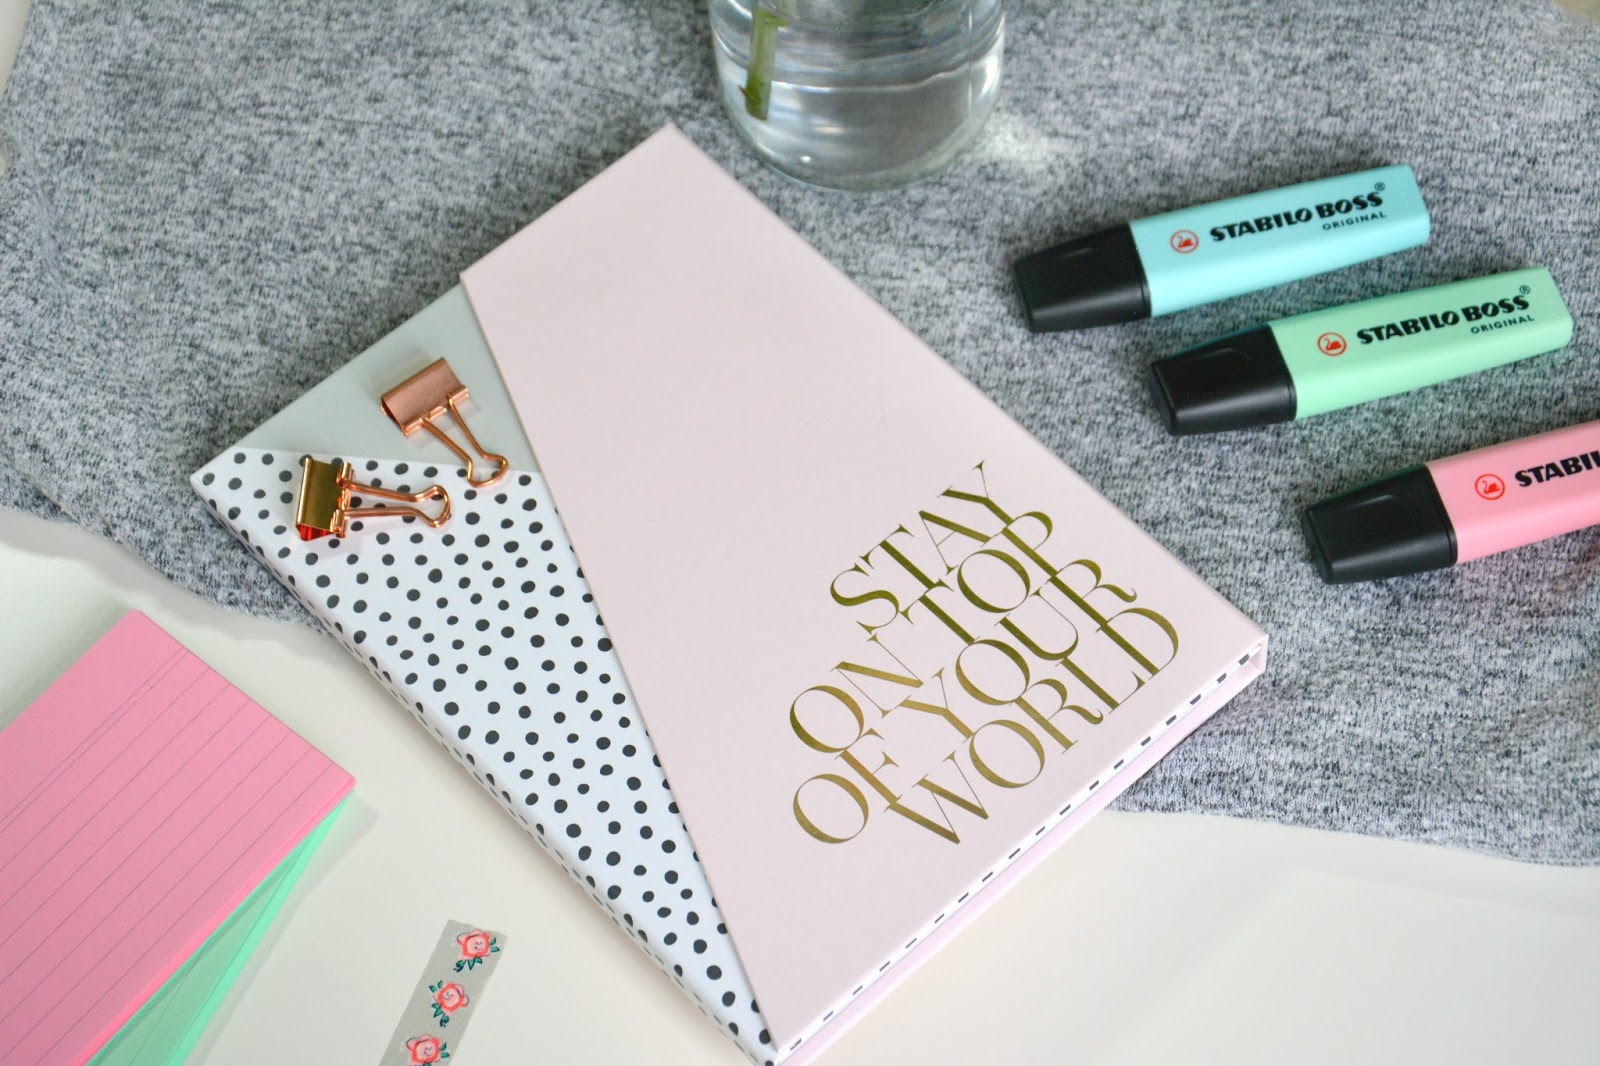 Washi Tape; Primark Rose Gold Clips; Zoella Stationary Book; Stabilo Pastel Highlighters